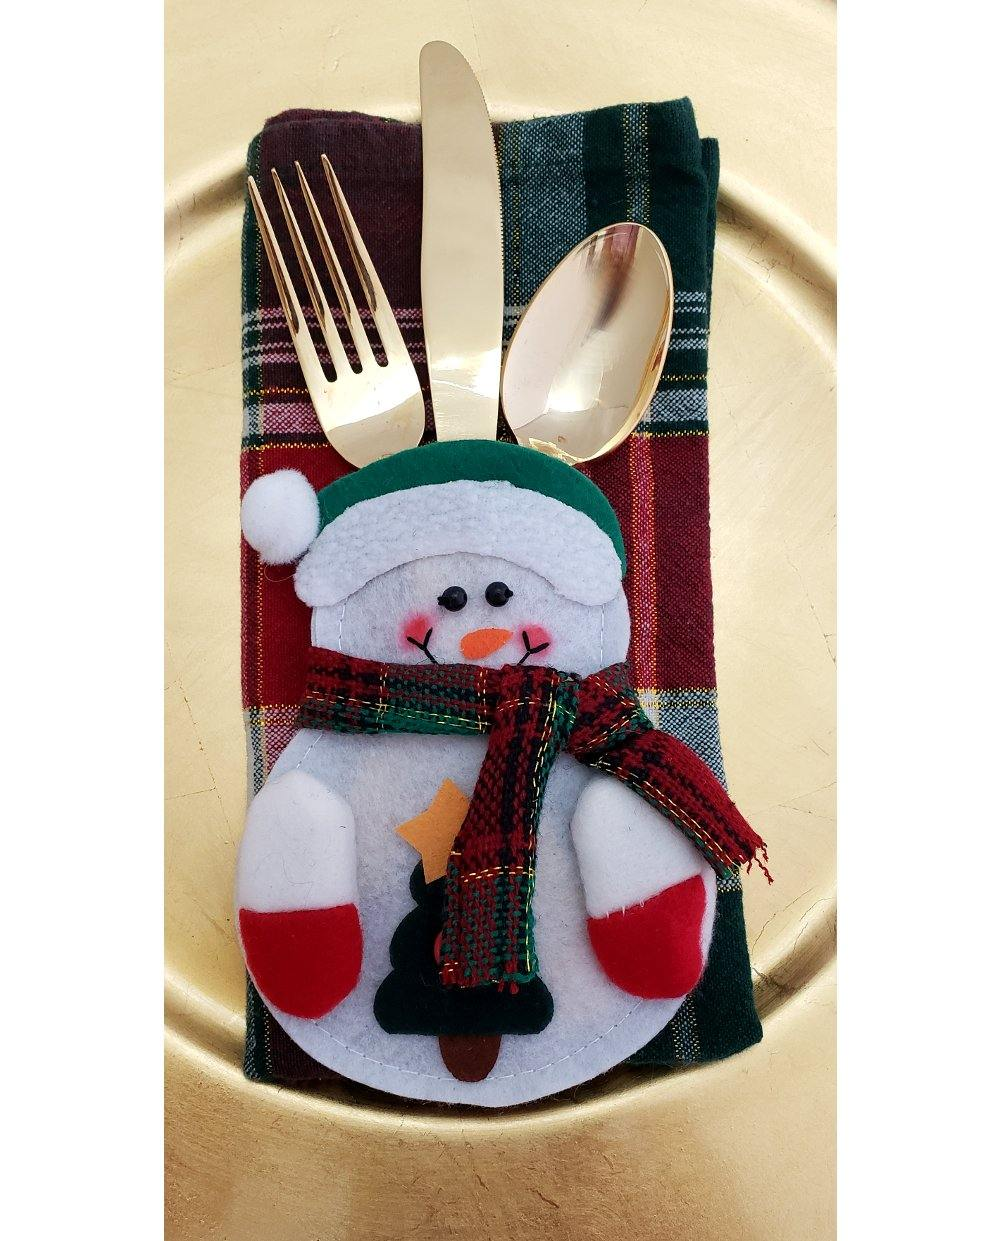 Snowman Flatware Holder - perfect for kids!